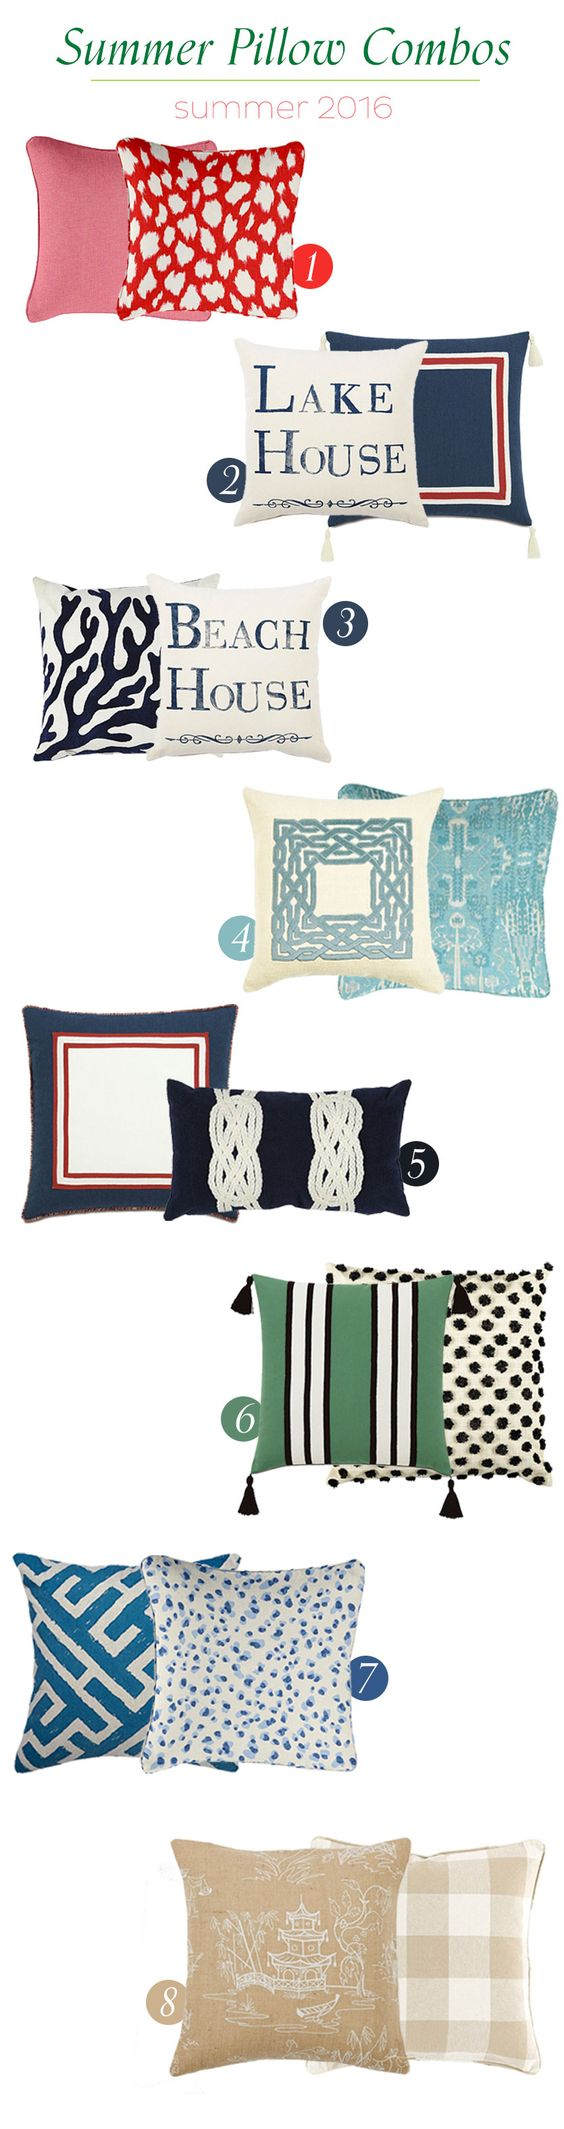 Summer 2016 pillow options for your living room: